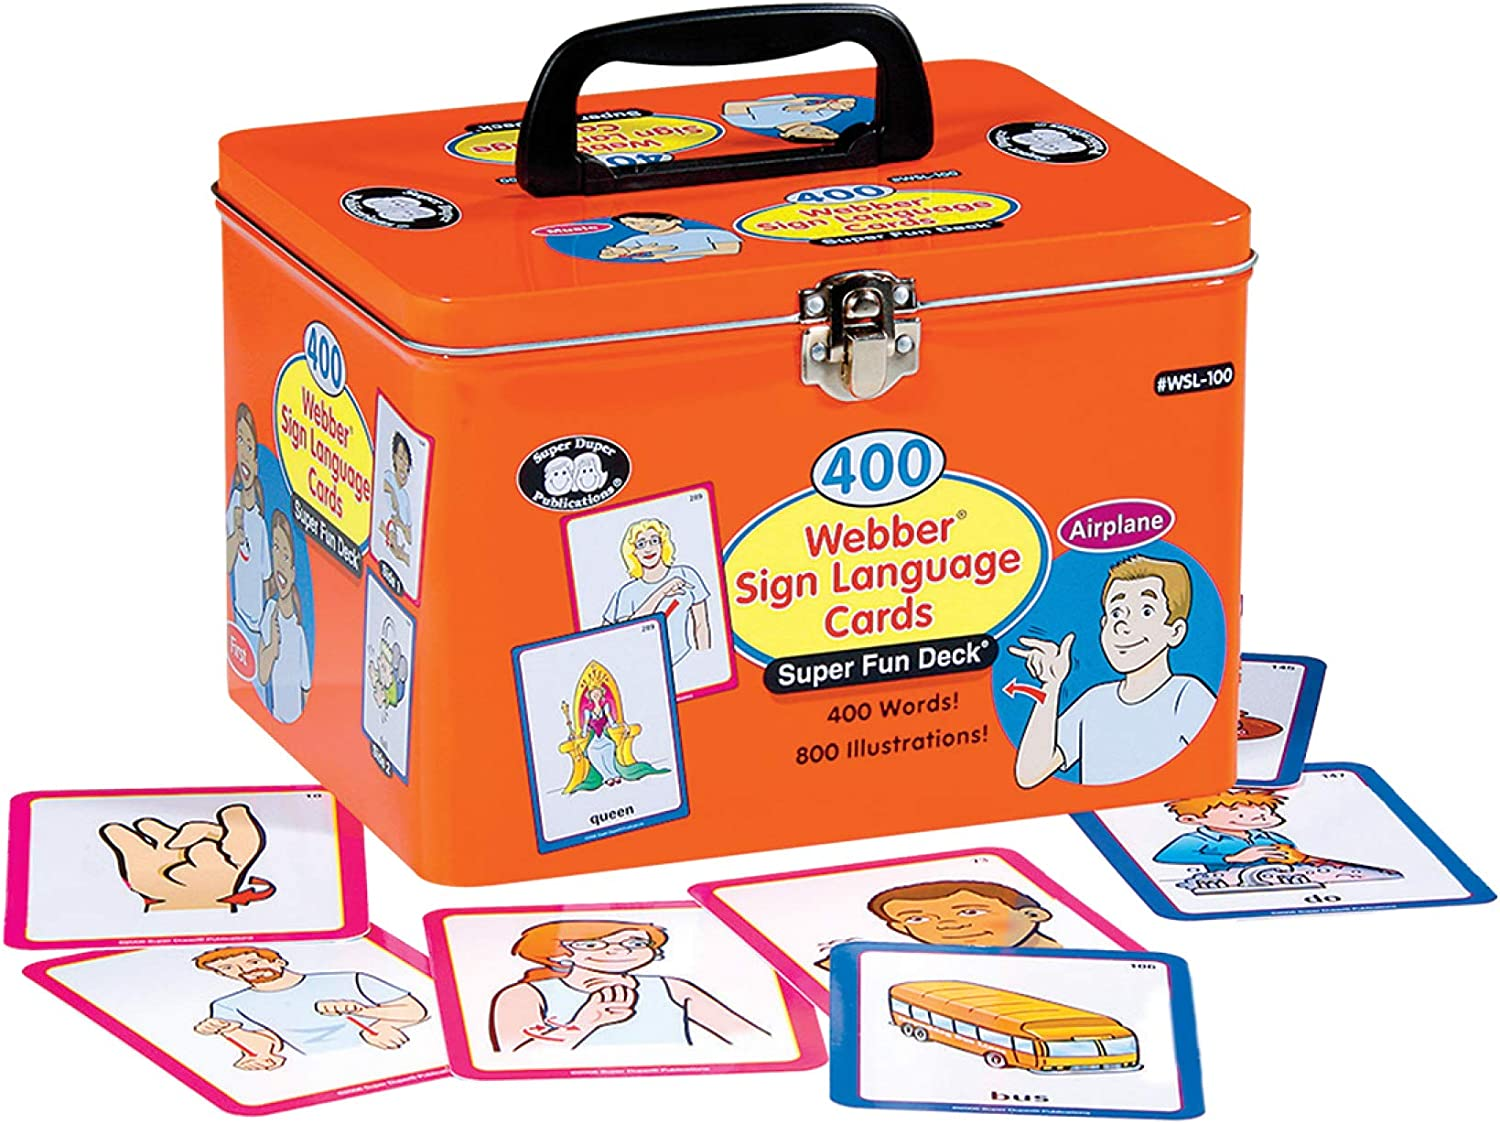 1586506811 Super Duper Publications 400 American Sign Language (ASL) Flash Cards Fun Deck Educational Learning Resource for Children 81MqM-5NTjL.SL1500_